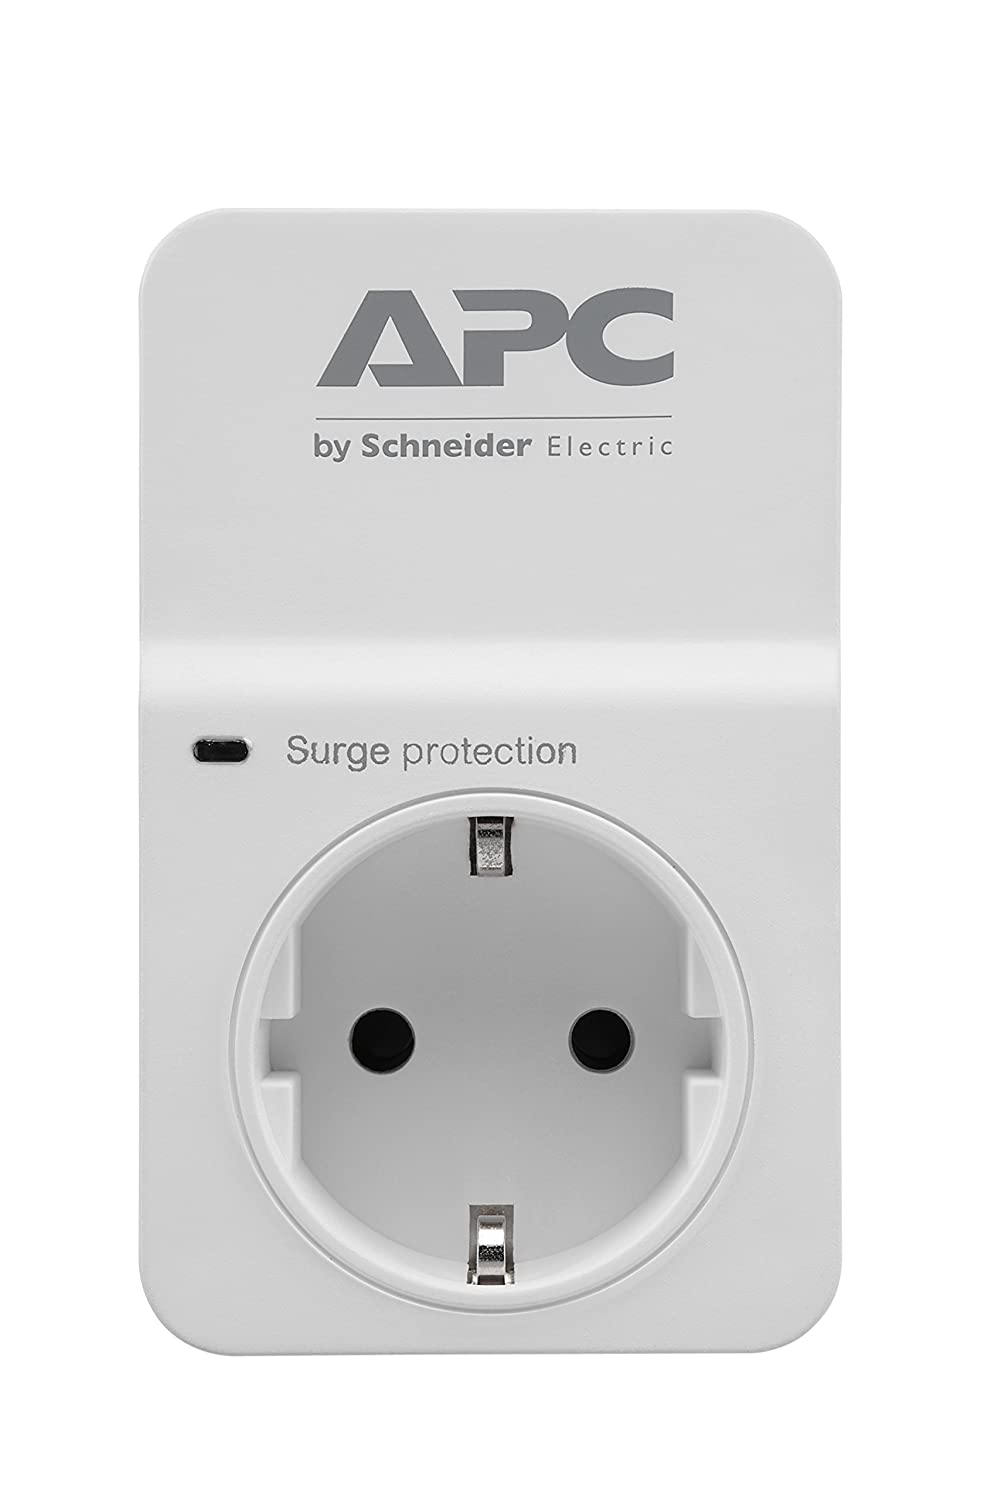 APC SurgeArrest Protection surtension 1 Sortie Protections surtensions CA 230 V Blanc 918 J, 1 Sortie s s CA, Type F, 230 V, 50 Hz, 13000 A